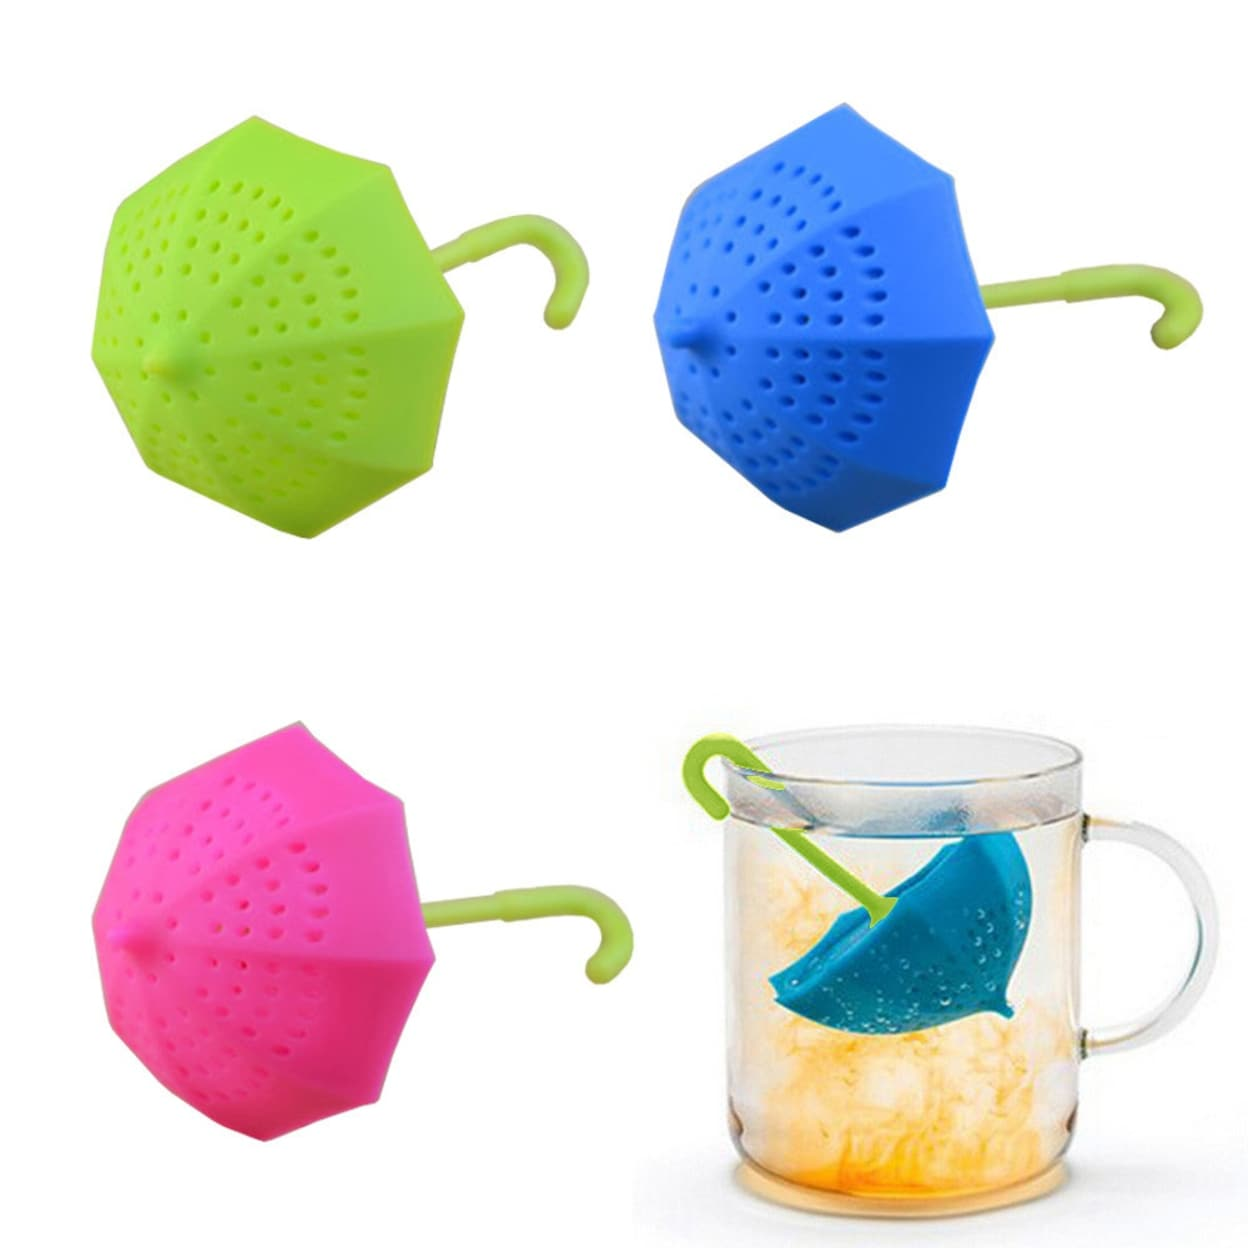 Tea Infuser Loose Leaf Strainer Silicone Herbal Spice Filter Diffuser Ball Tool